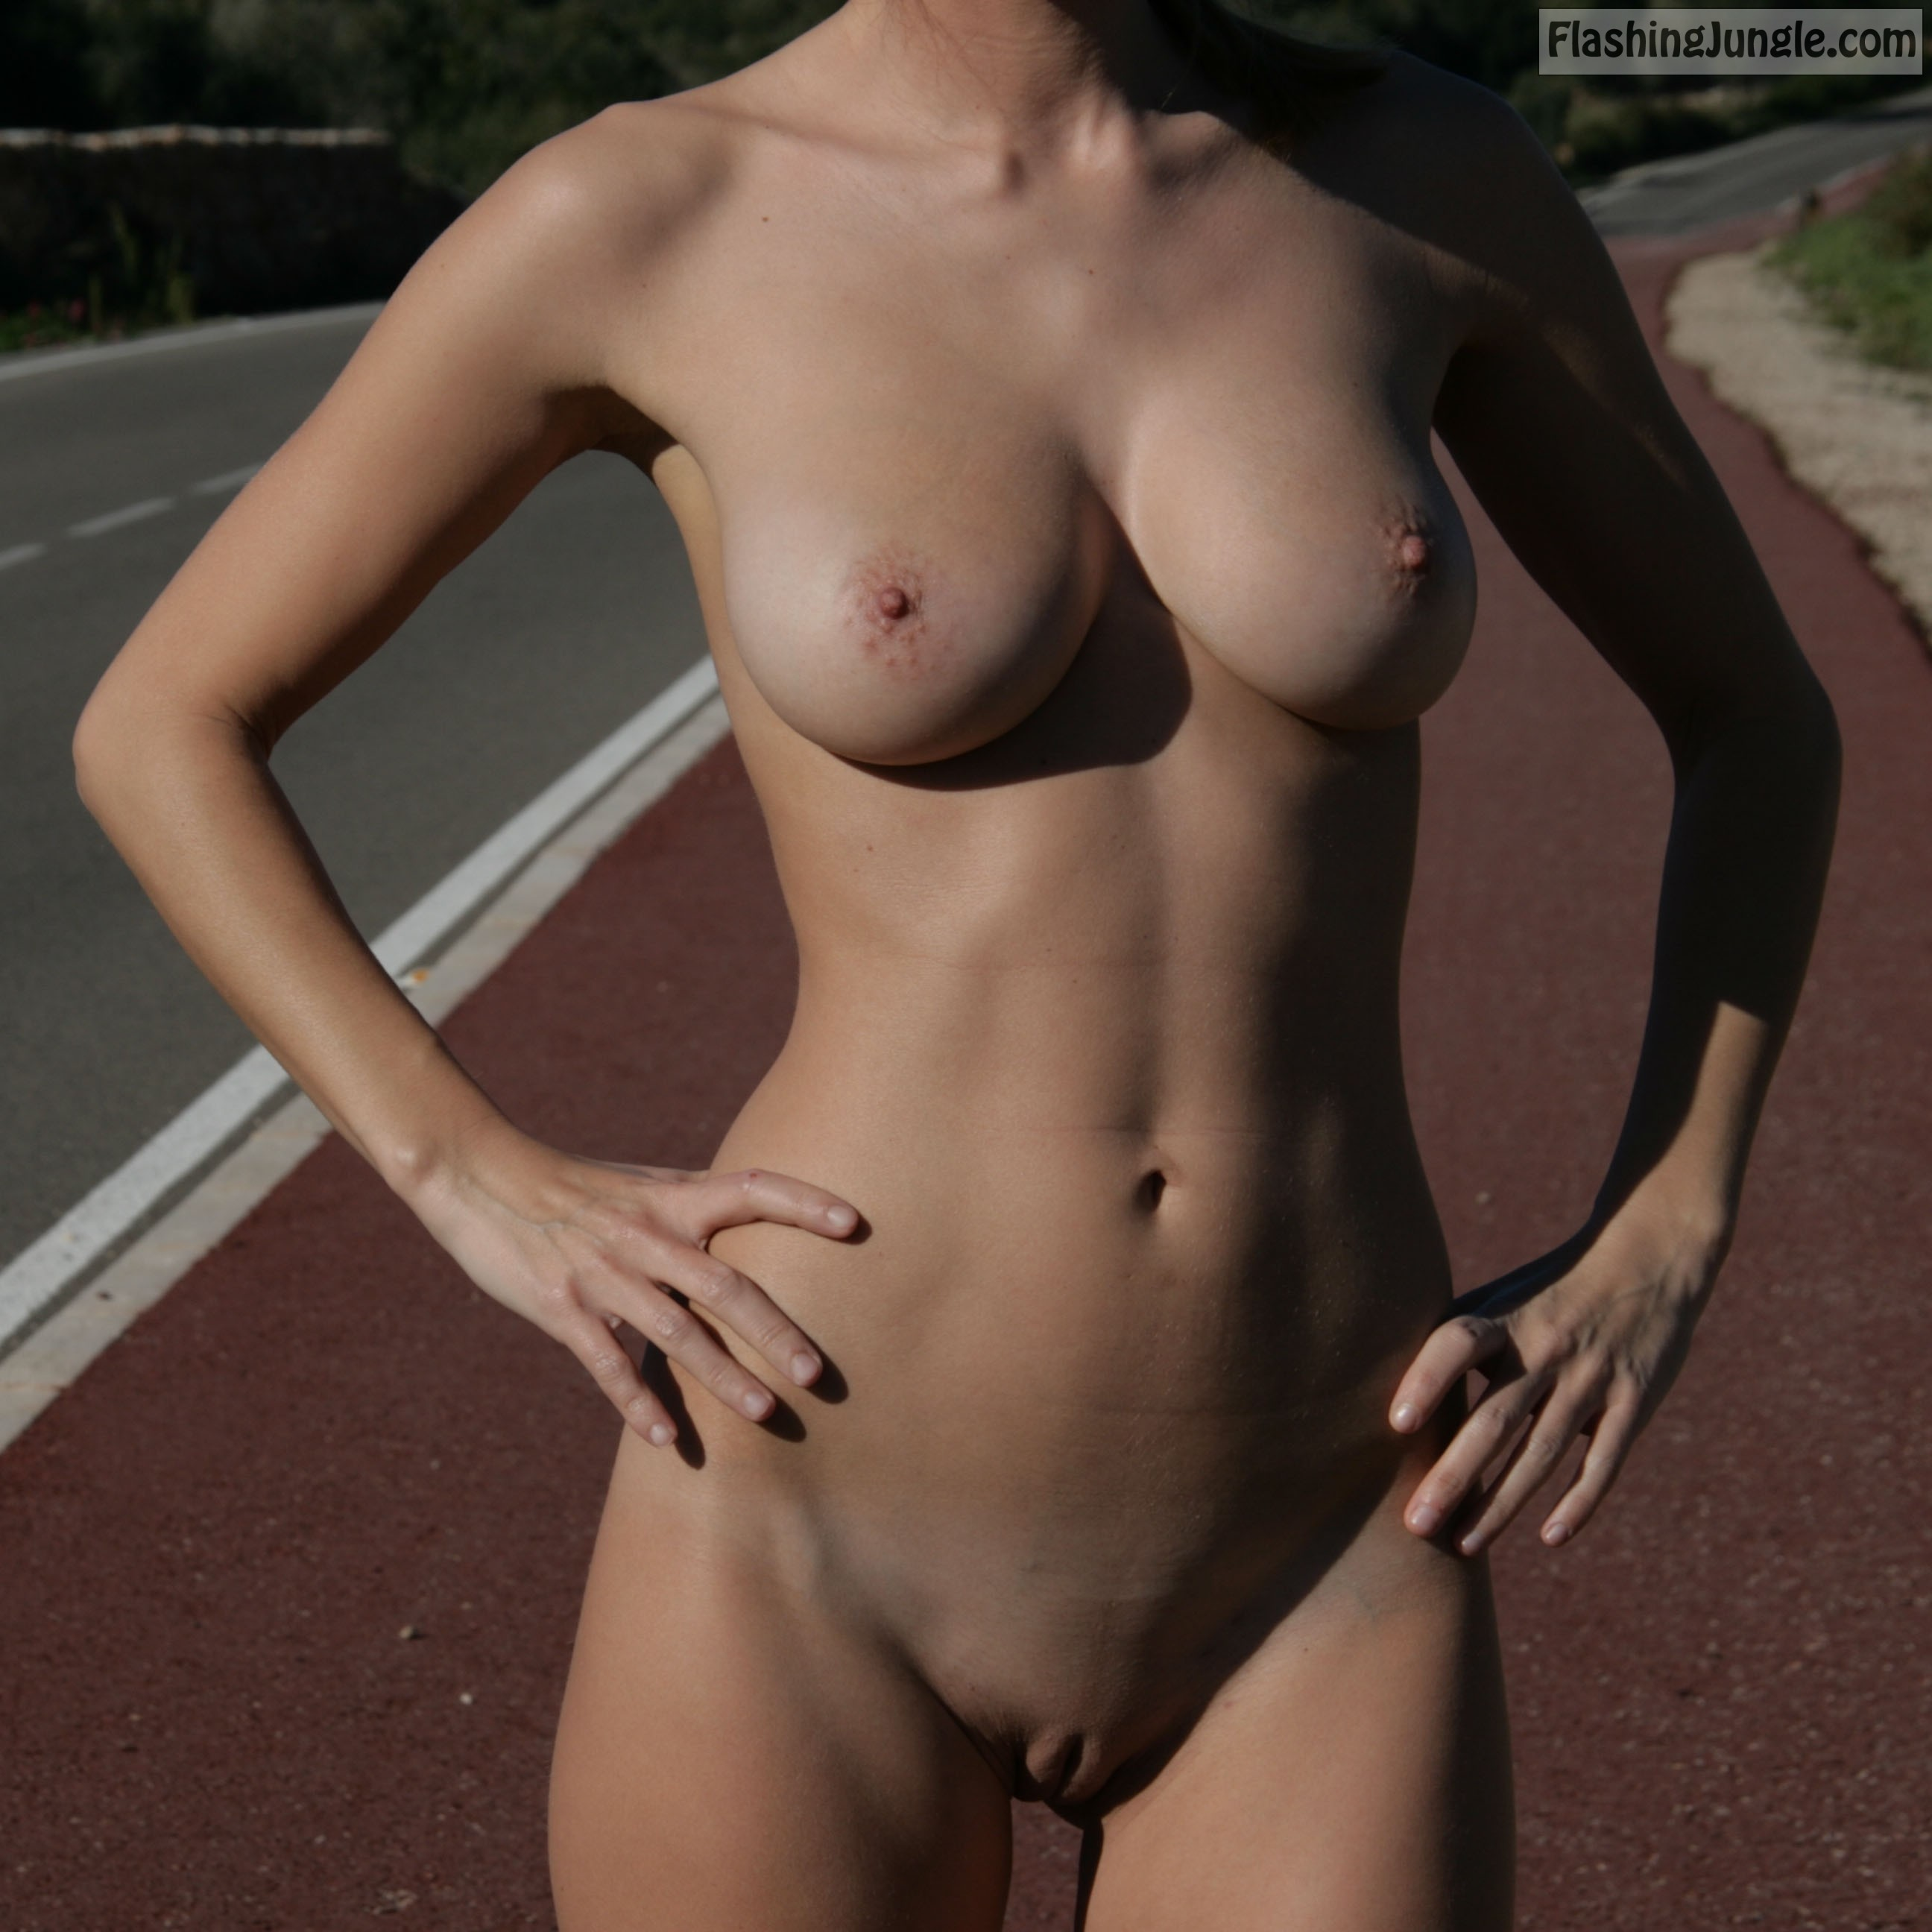 Nude beauty on roller skates in public public nudity